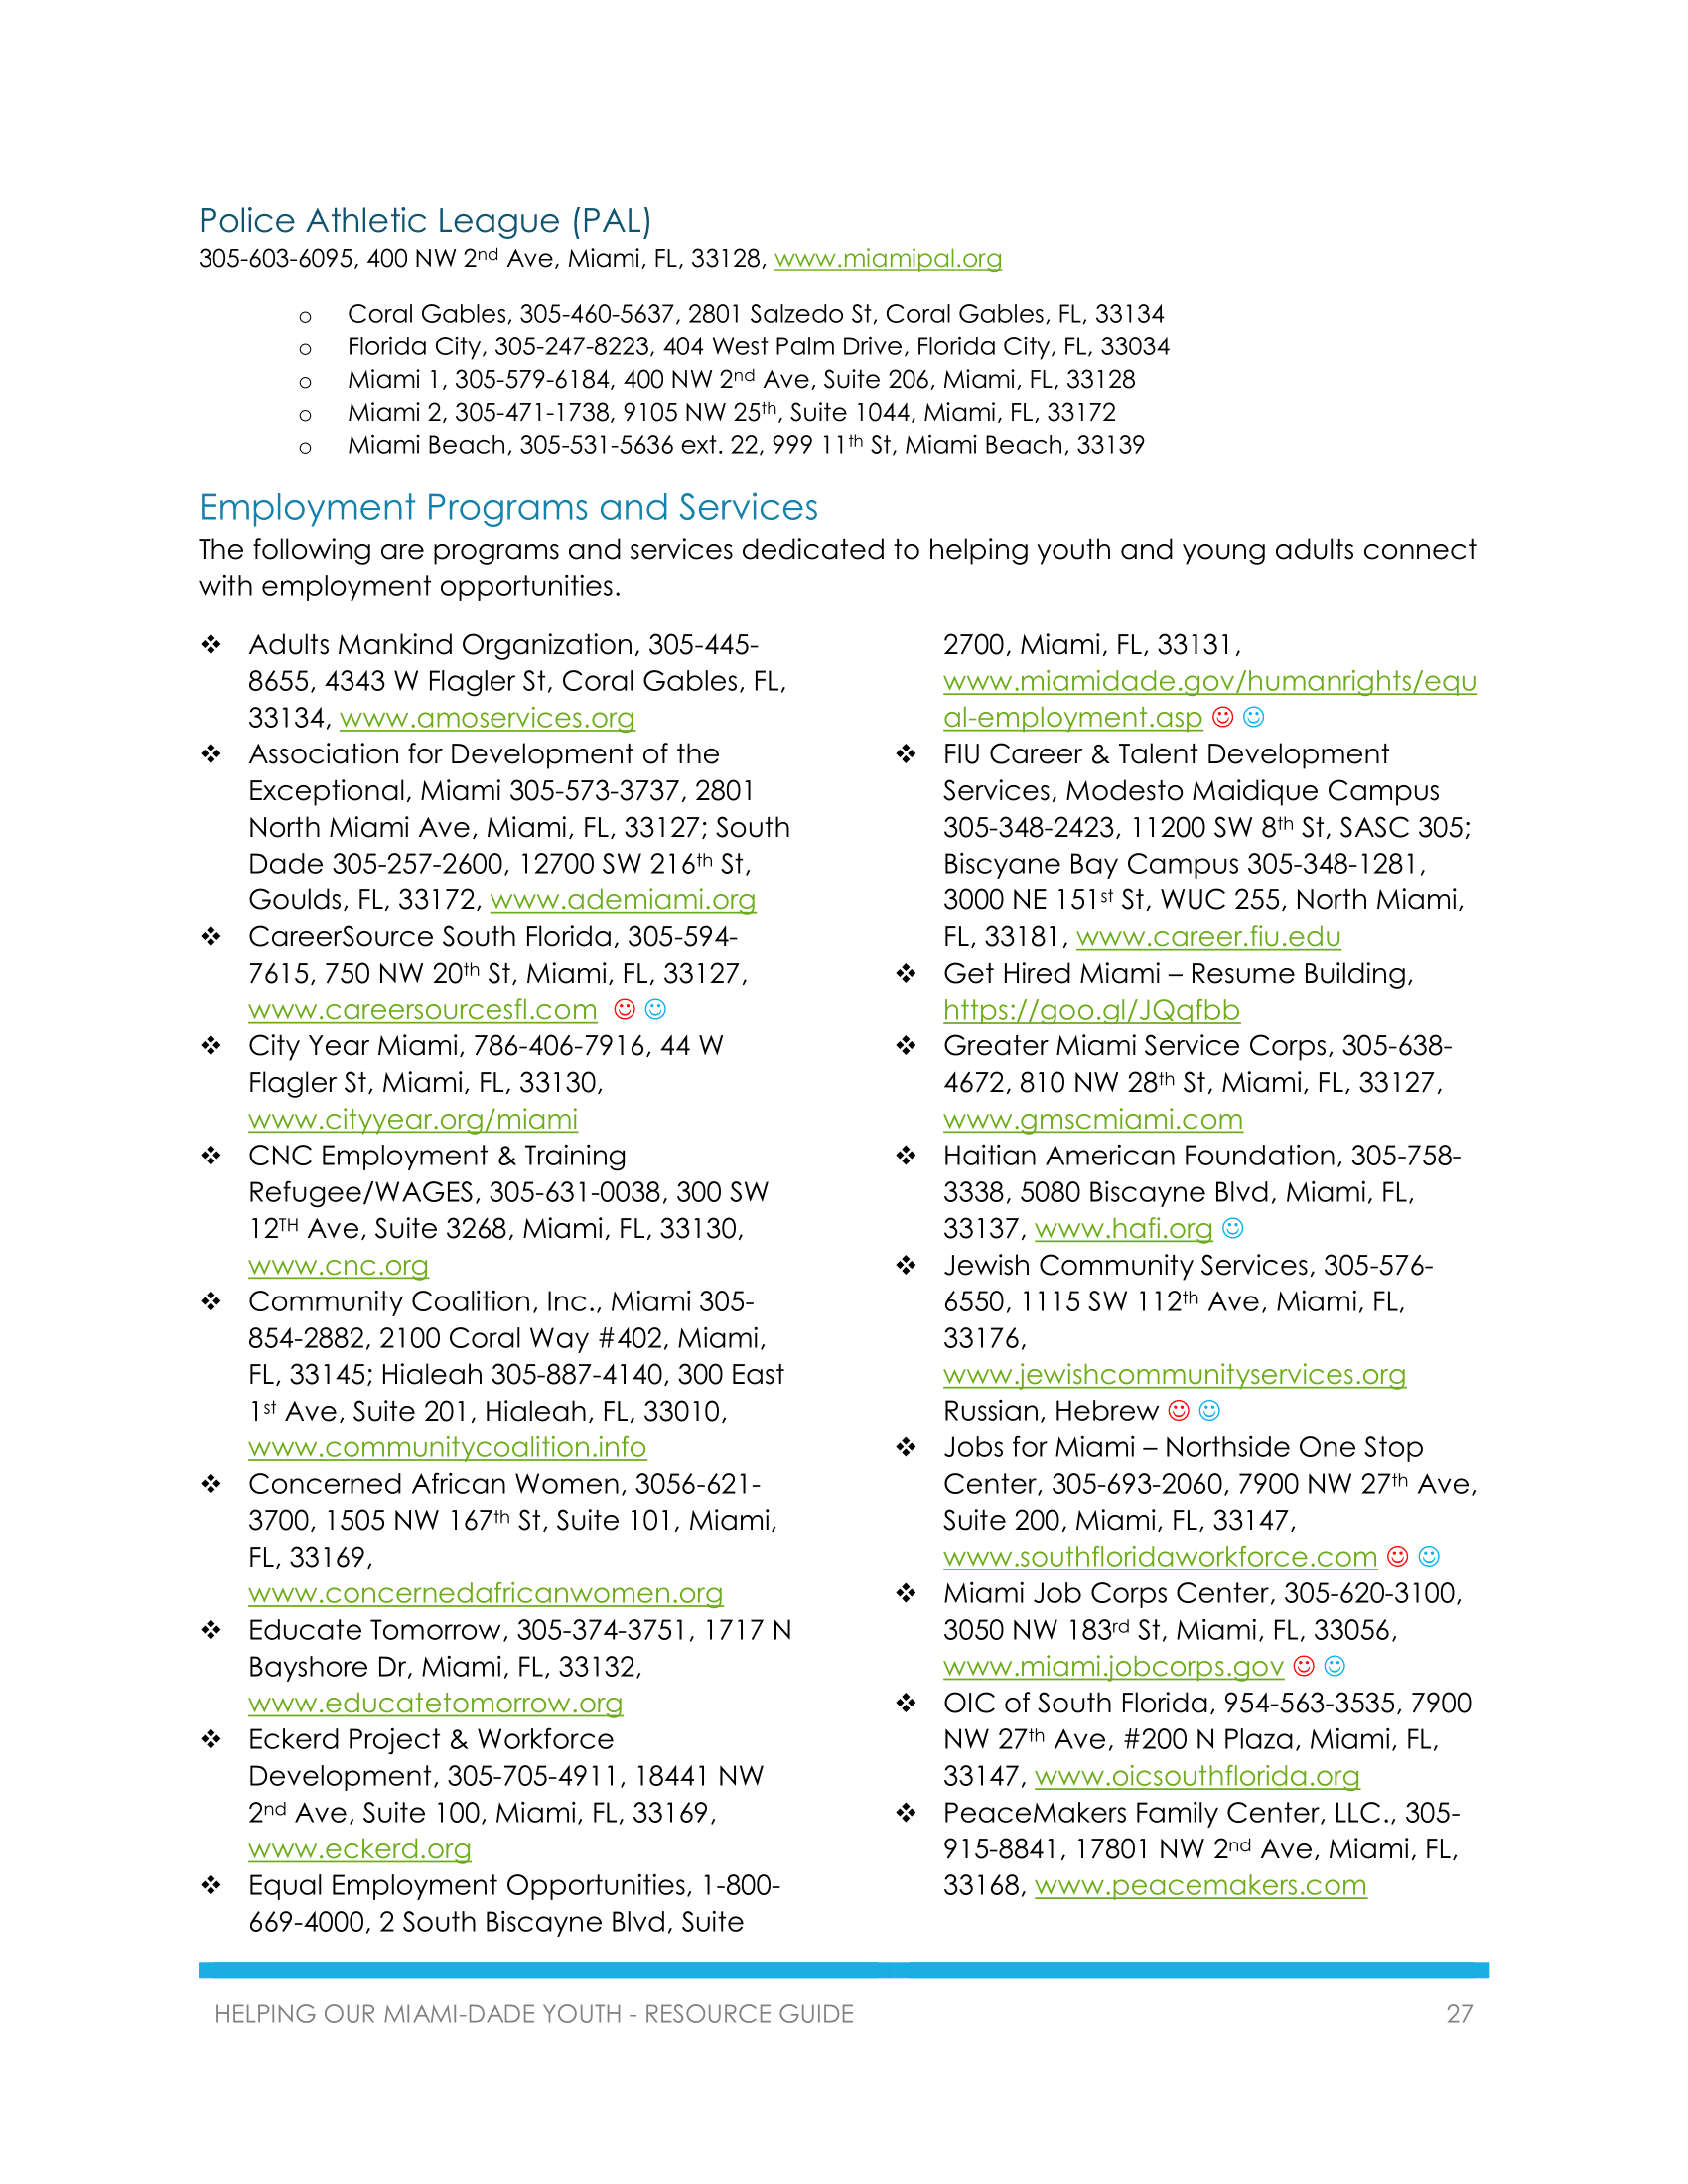 Youth Resource Guide - May 2018-32.png